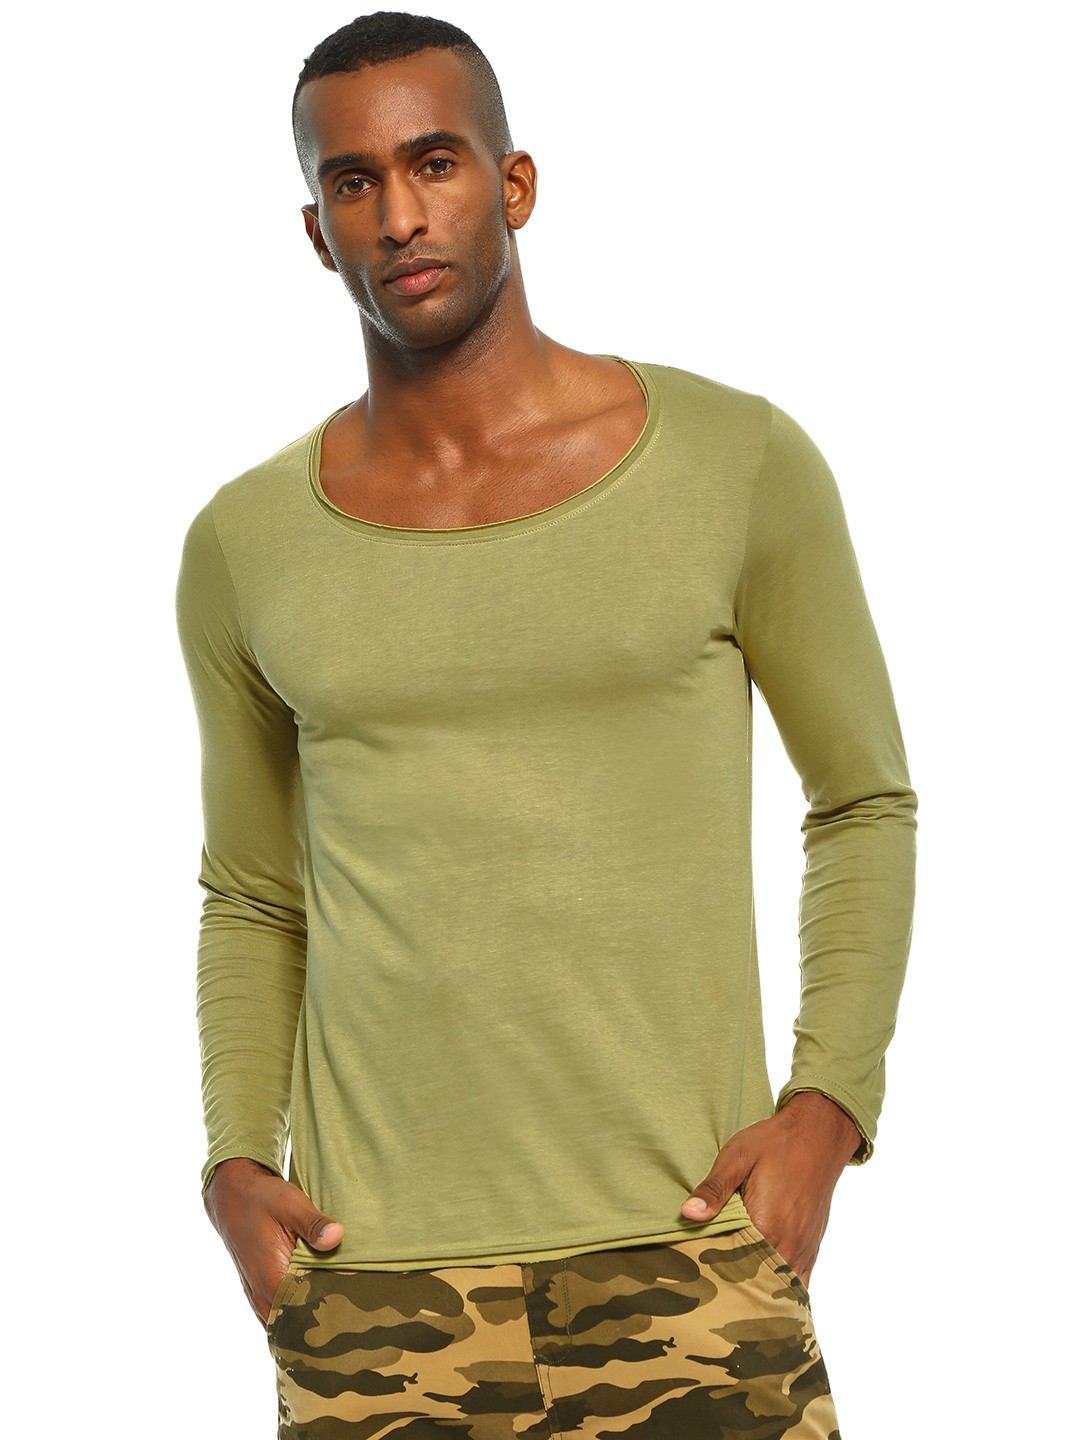 Blue Saint Green Long Sleeve Scoop Neck T-Shirt 1